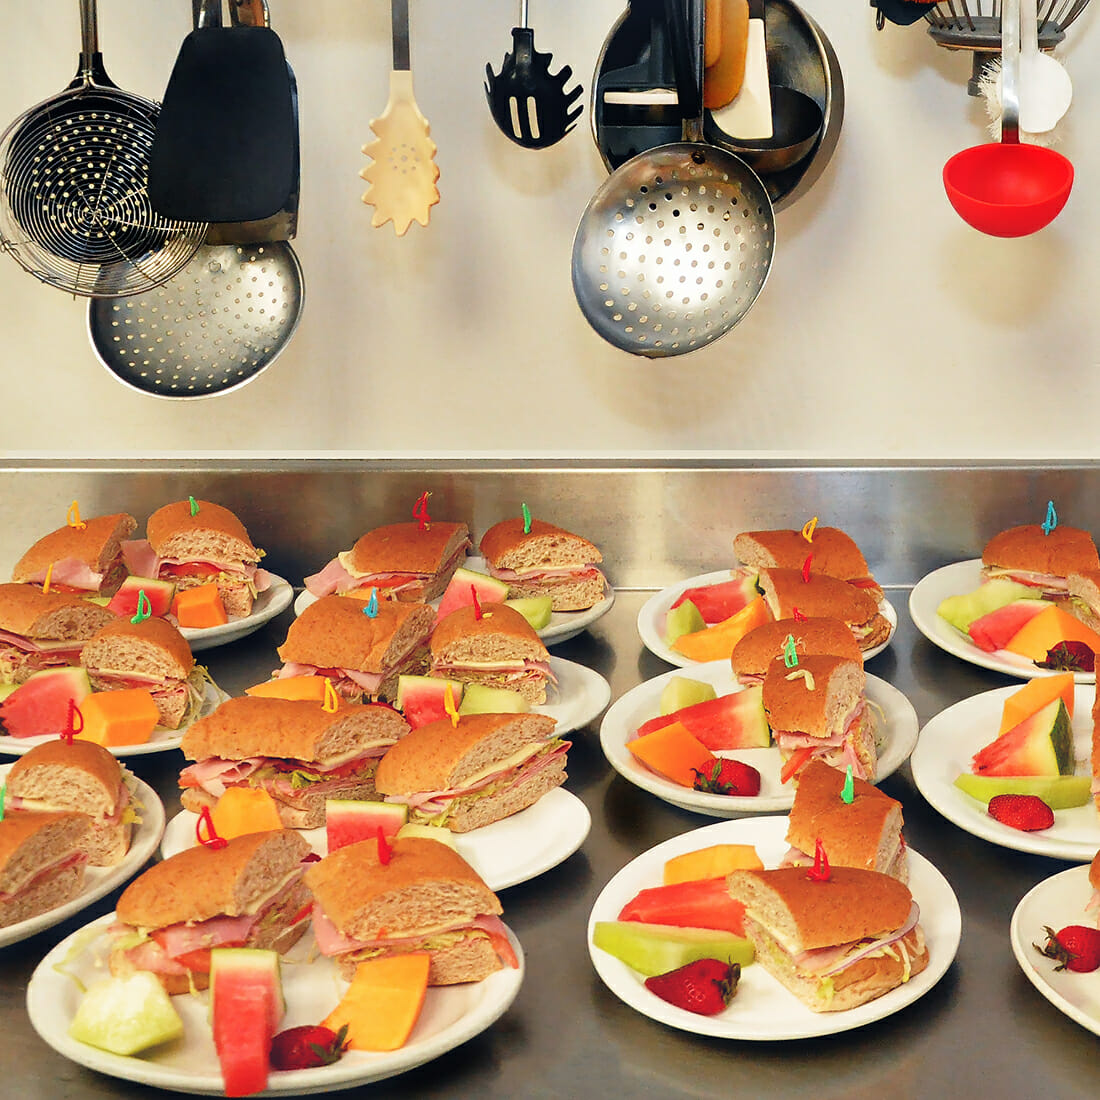 Sandwiches and fruit on plates in the Punanai Centre kitchen.